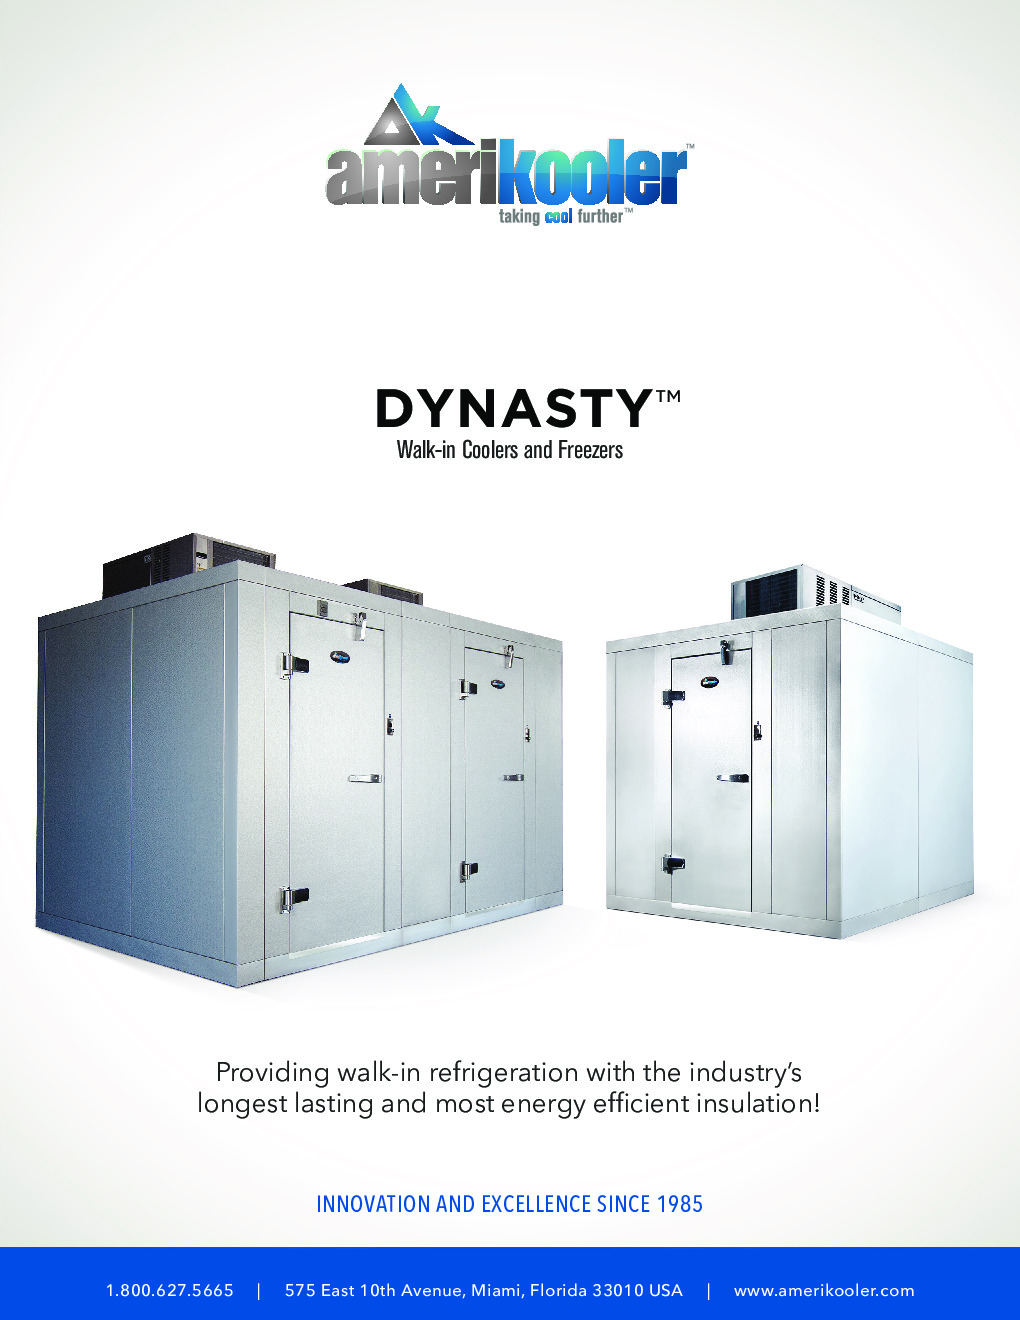 AmeriKooler DW091777N-8/9-RM 9' X 17' Walk-In Cooler, 9' L Cooler without Floor and 8' L Freezer, Remote